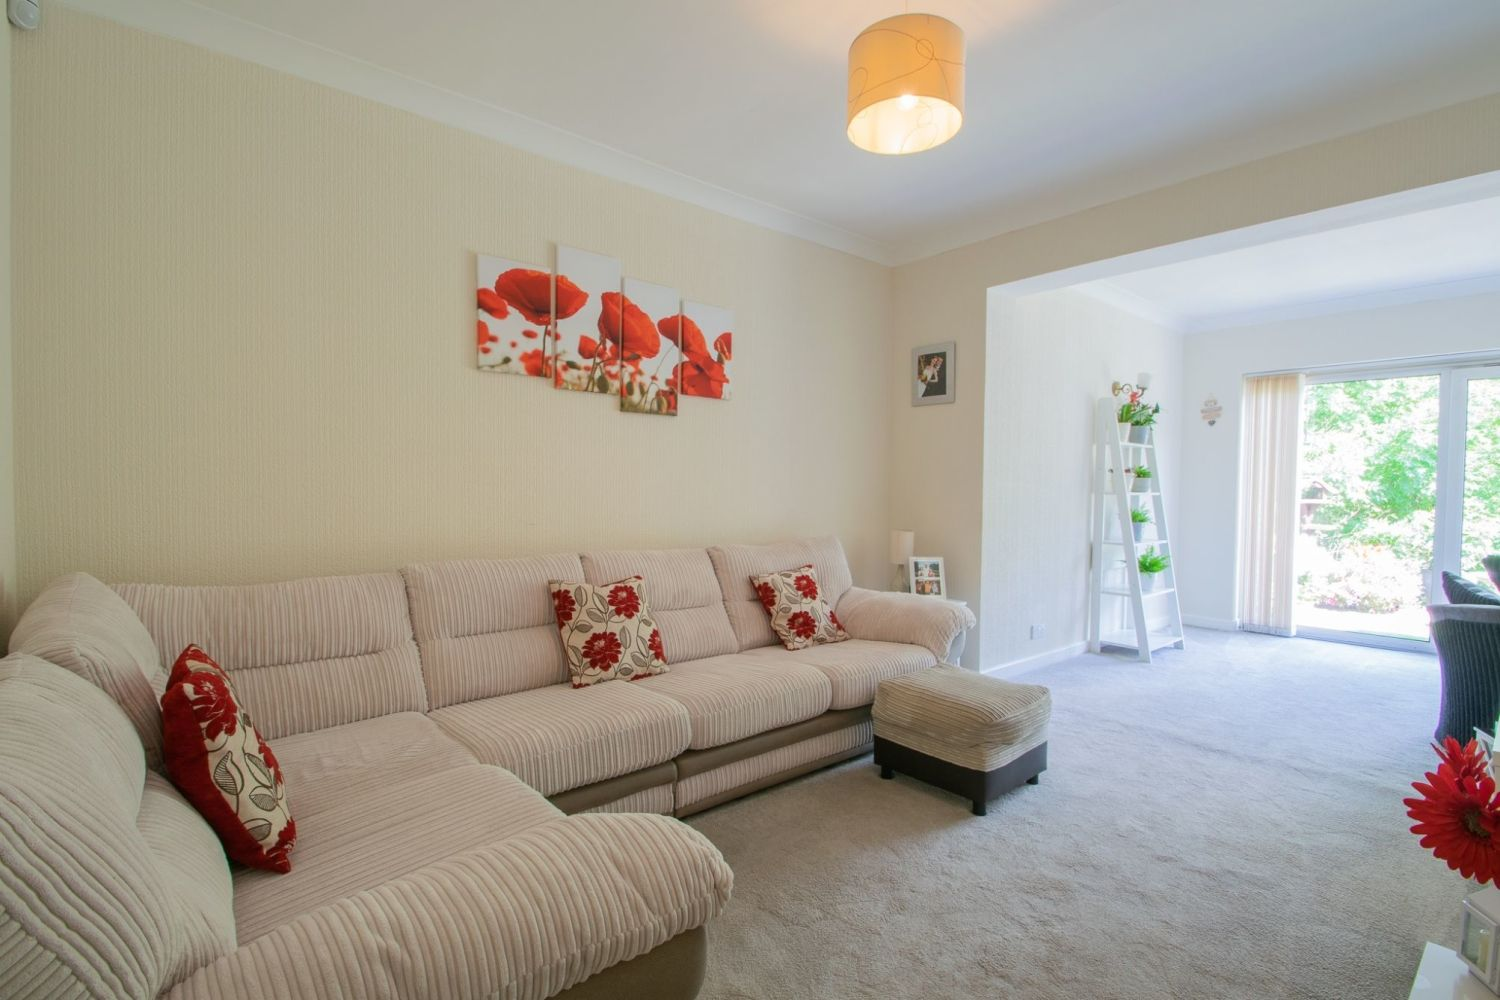 3 bed semi-detached for sale in High Haden Crescent, Cradley Heath  - Property Image 3